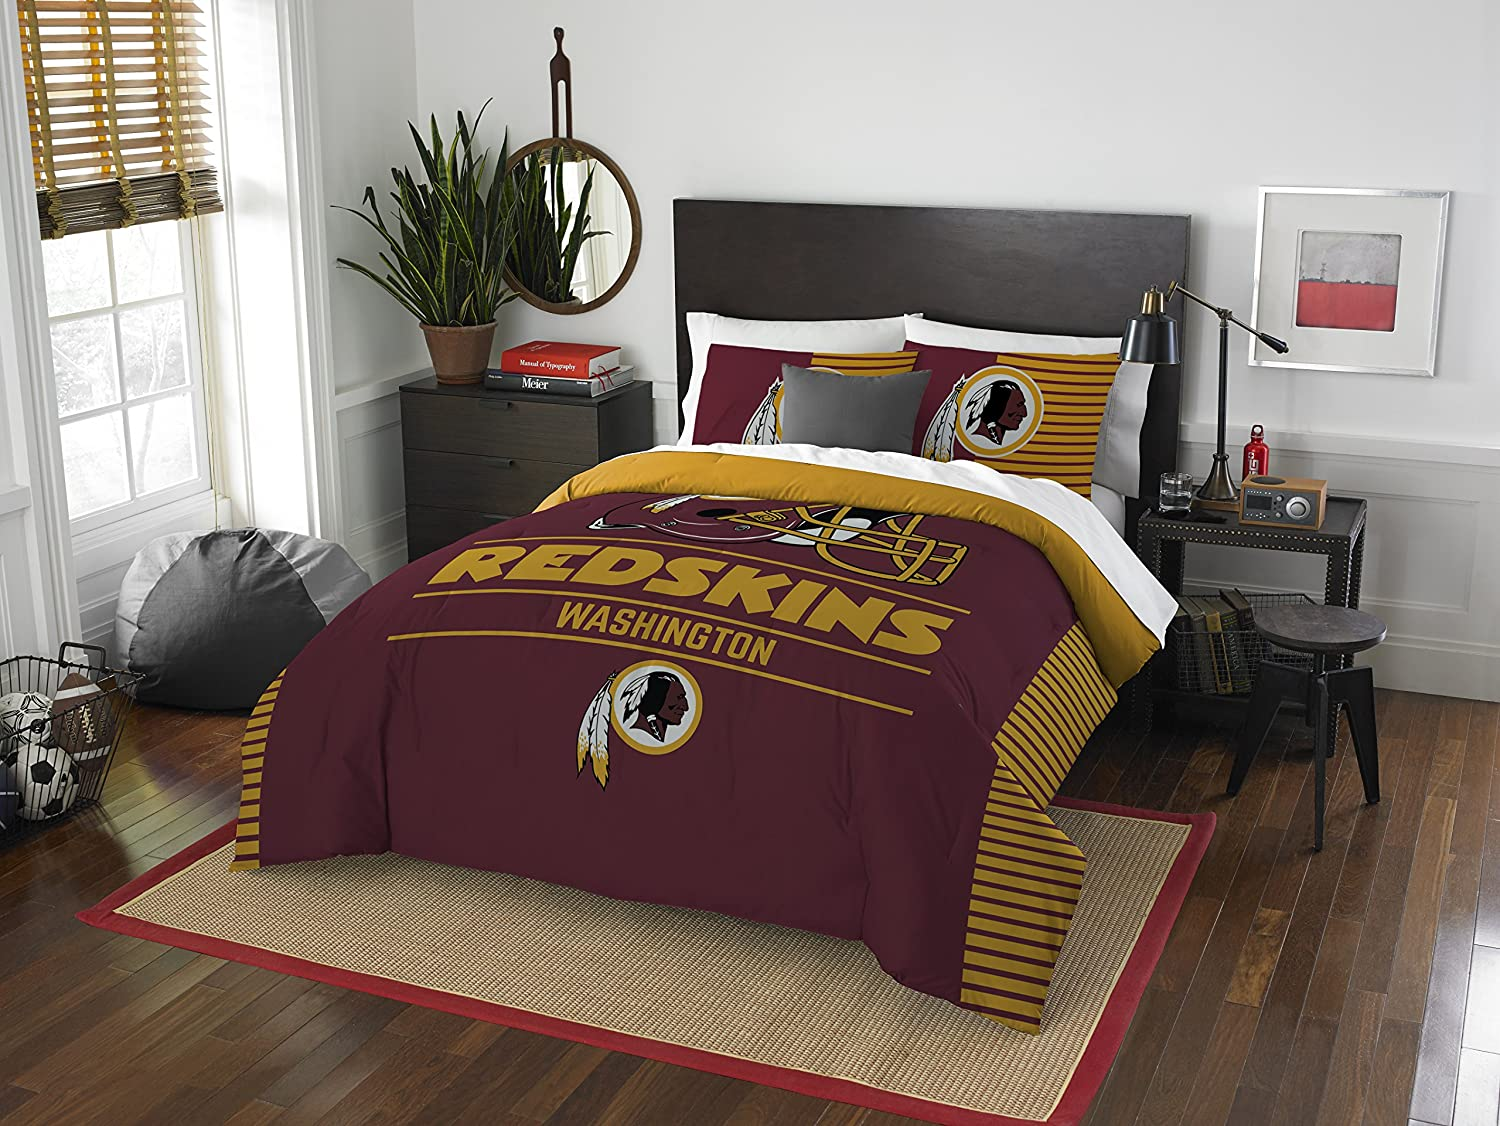 NFL Washington Redskins Draft Two Sham Set, Burgundy, Full/Queen Size